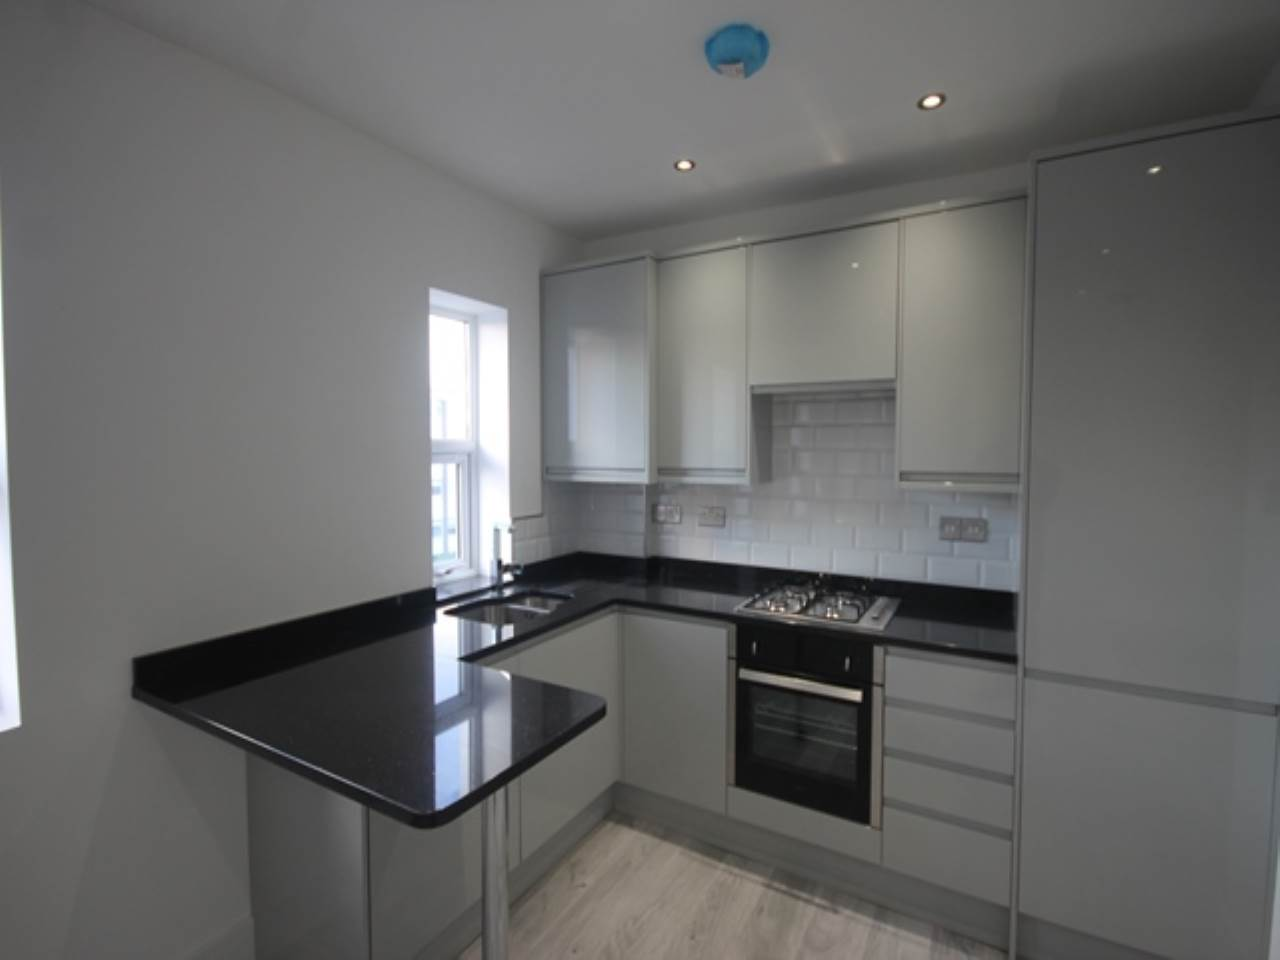 1 bed flat to rent in High Road, South Woodford, E18